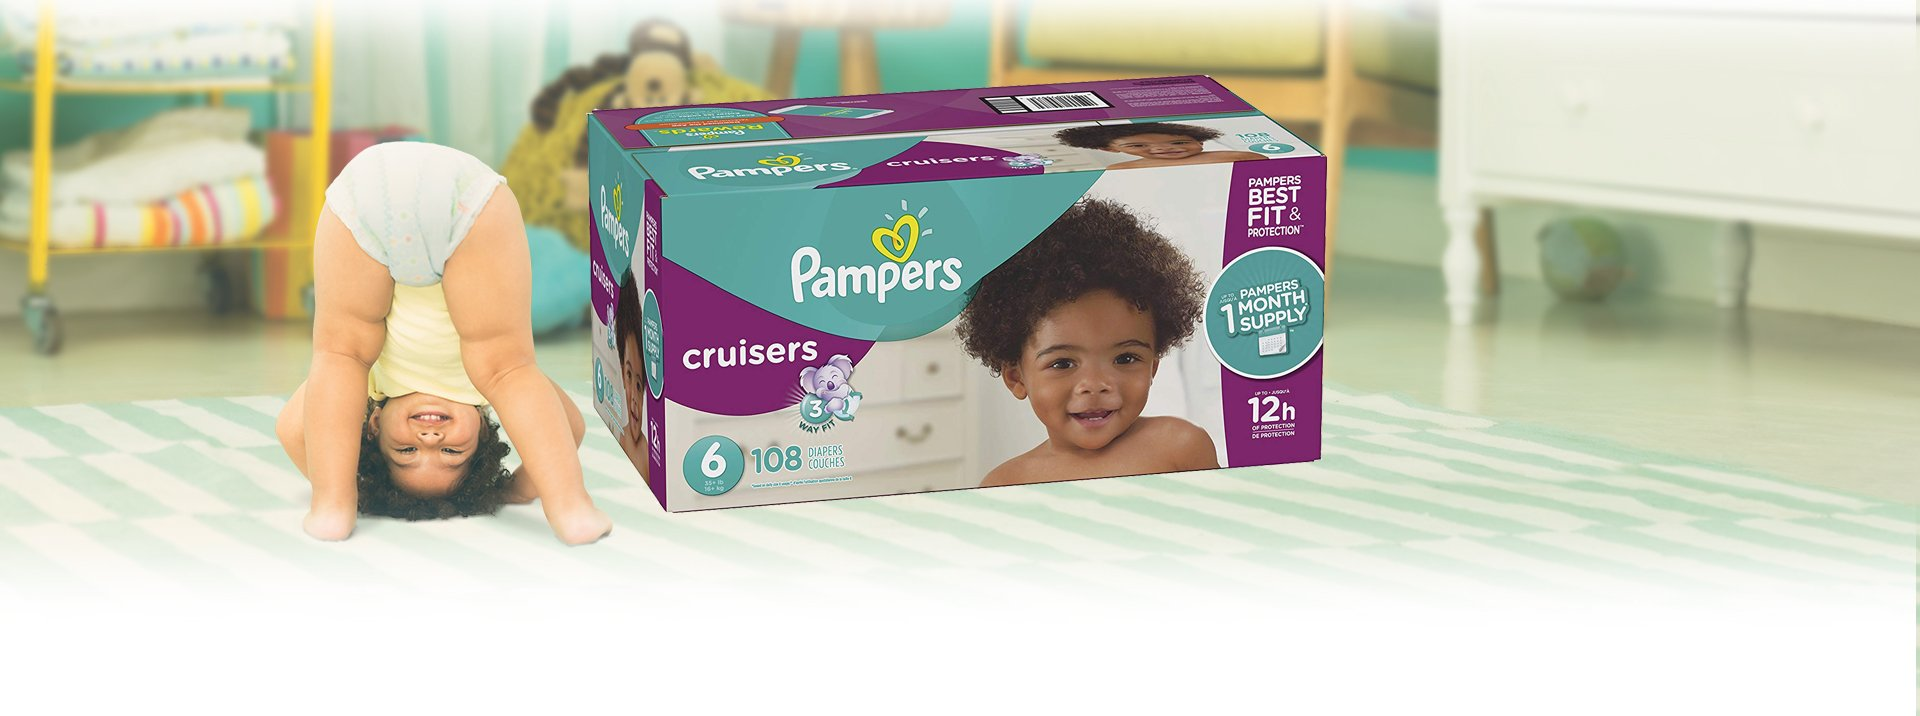 Pampers Cruisers Disposable Diapers Size 6, 108 Count by Pampers (Image #2)